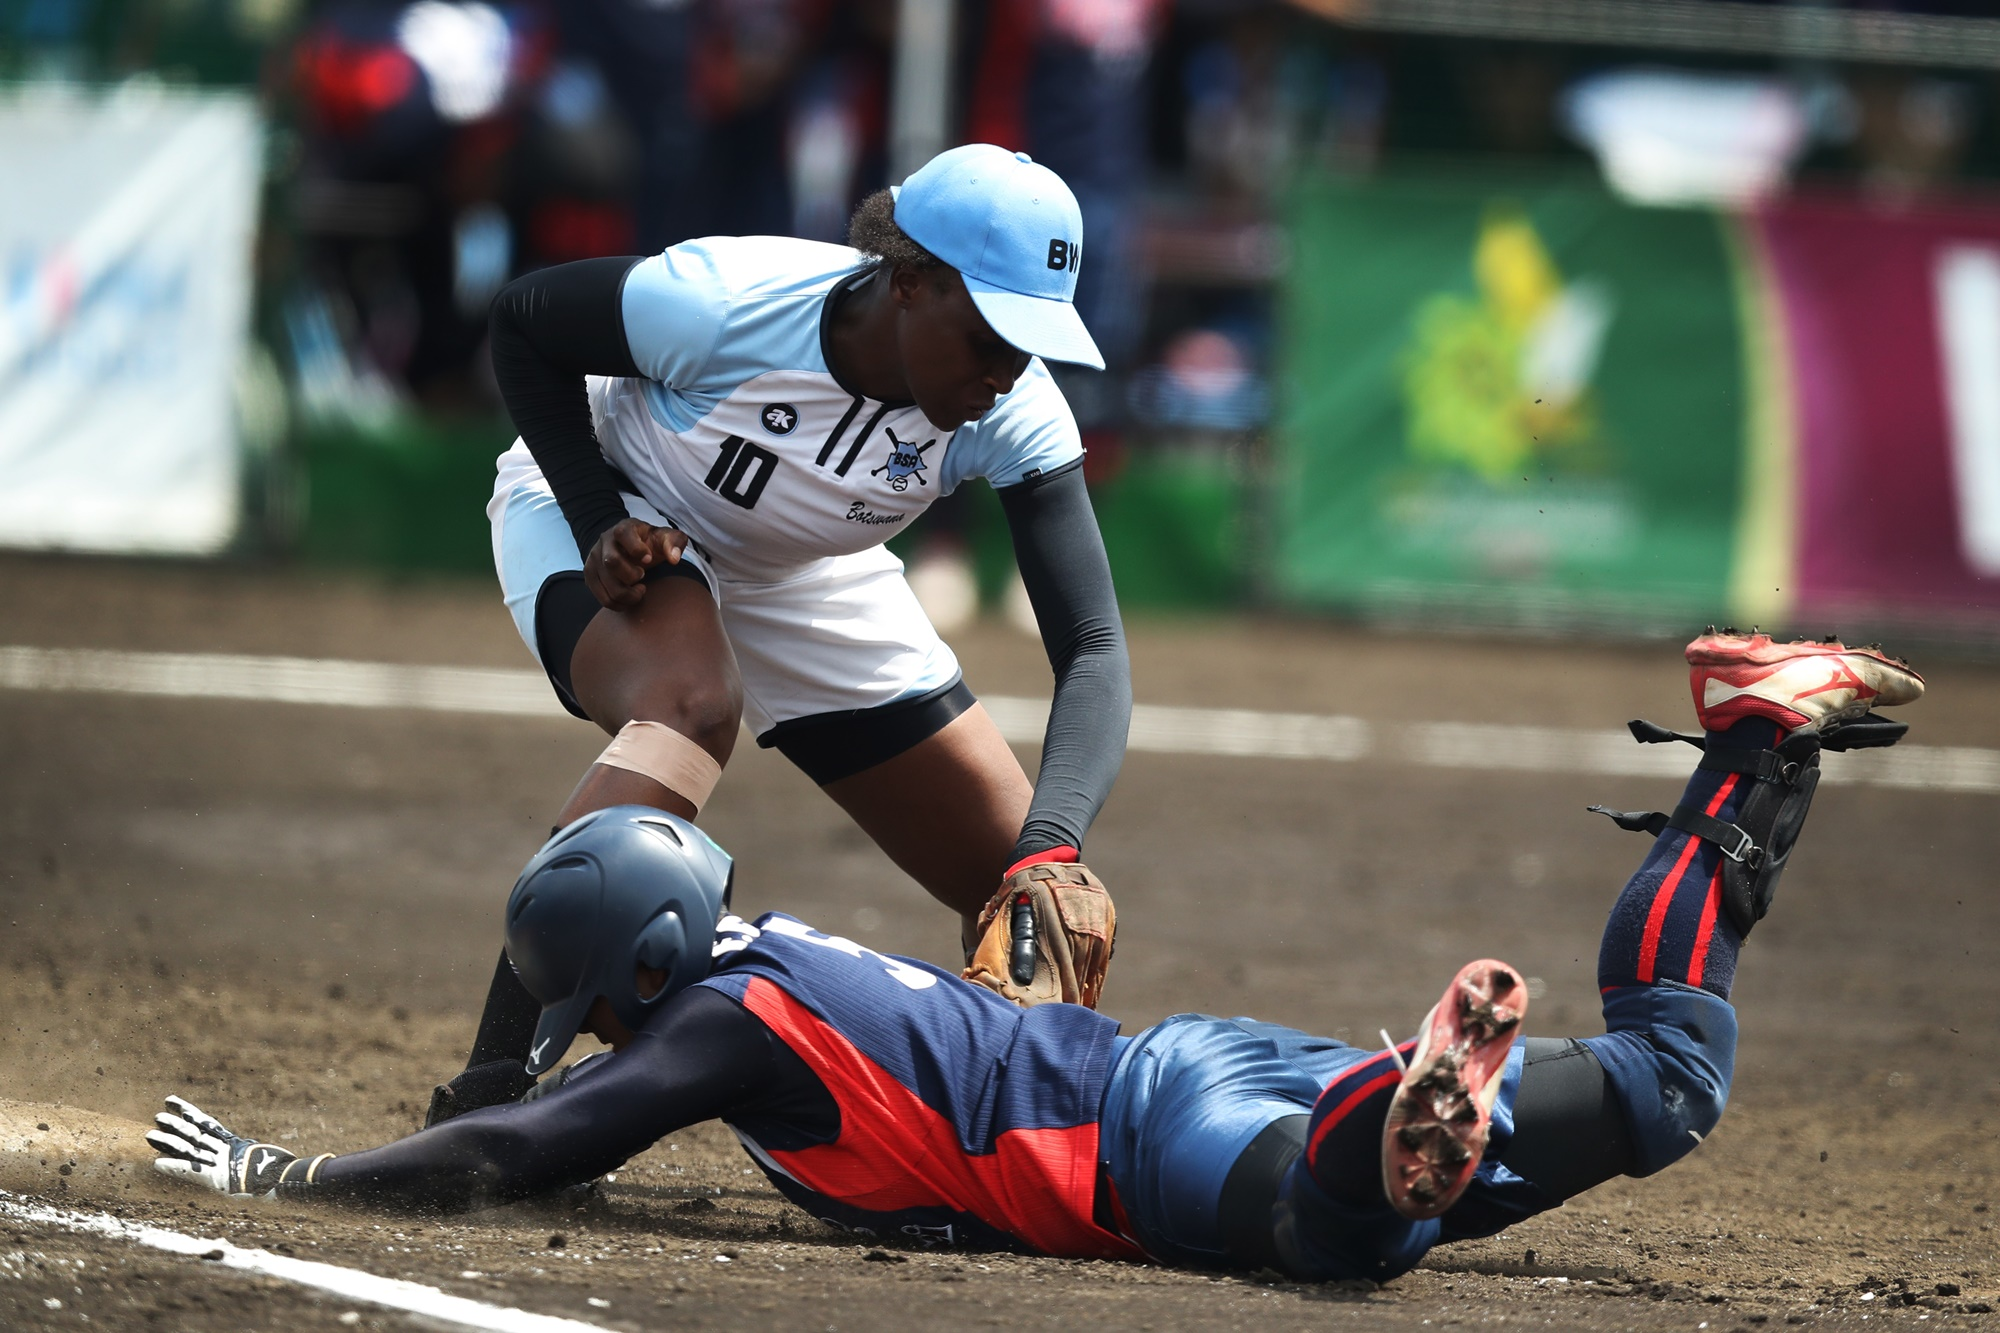 Lin Fen Cheng avoids a tag by Onalenna Ntibi